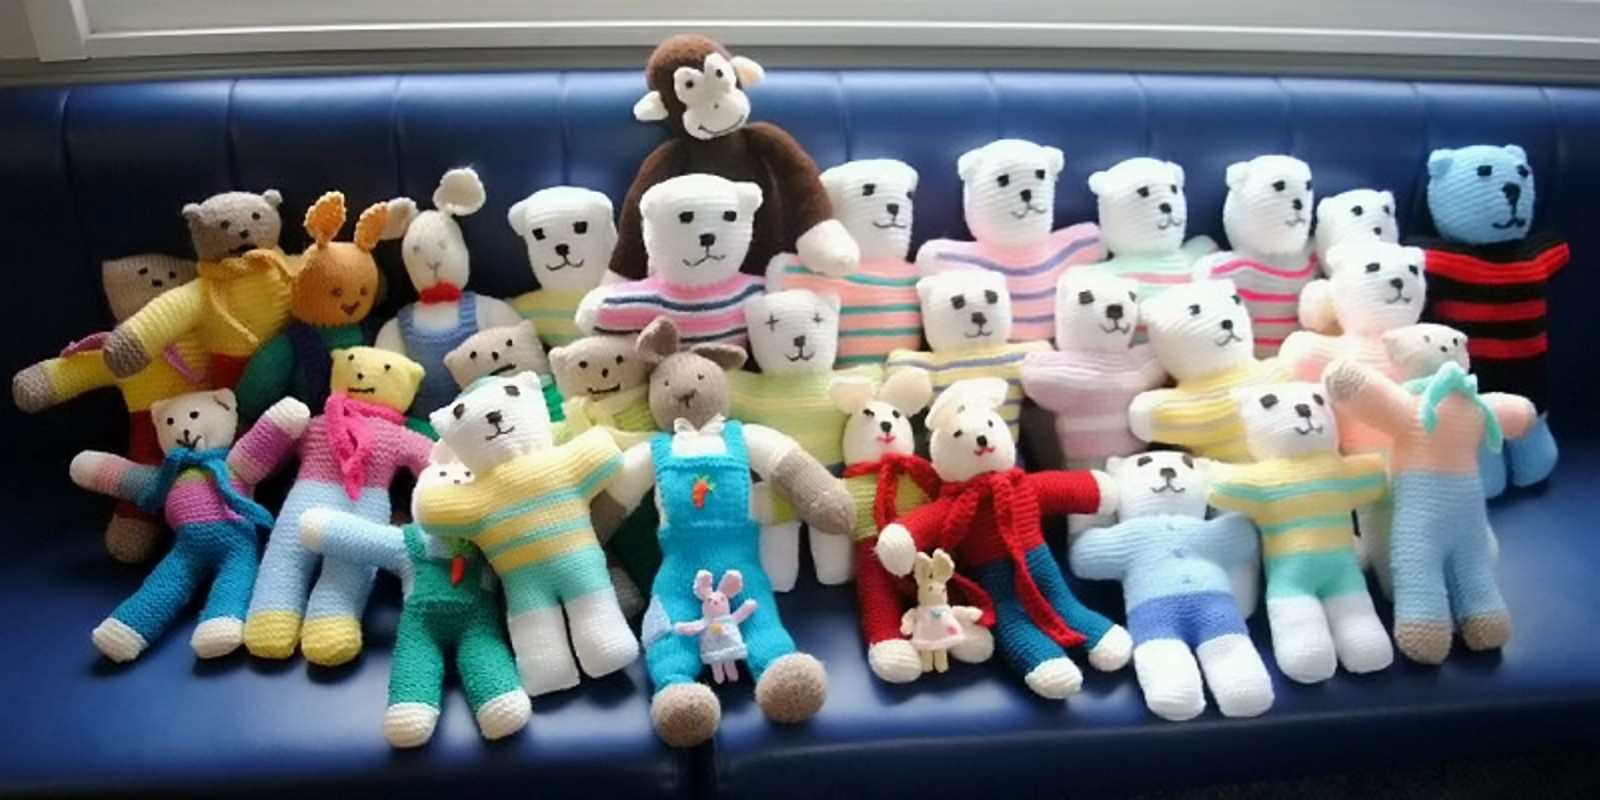 Find out why these are the most important teddies you'll see today